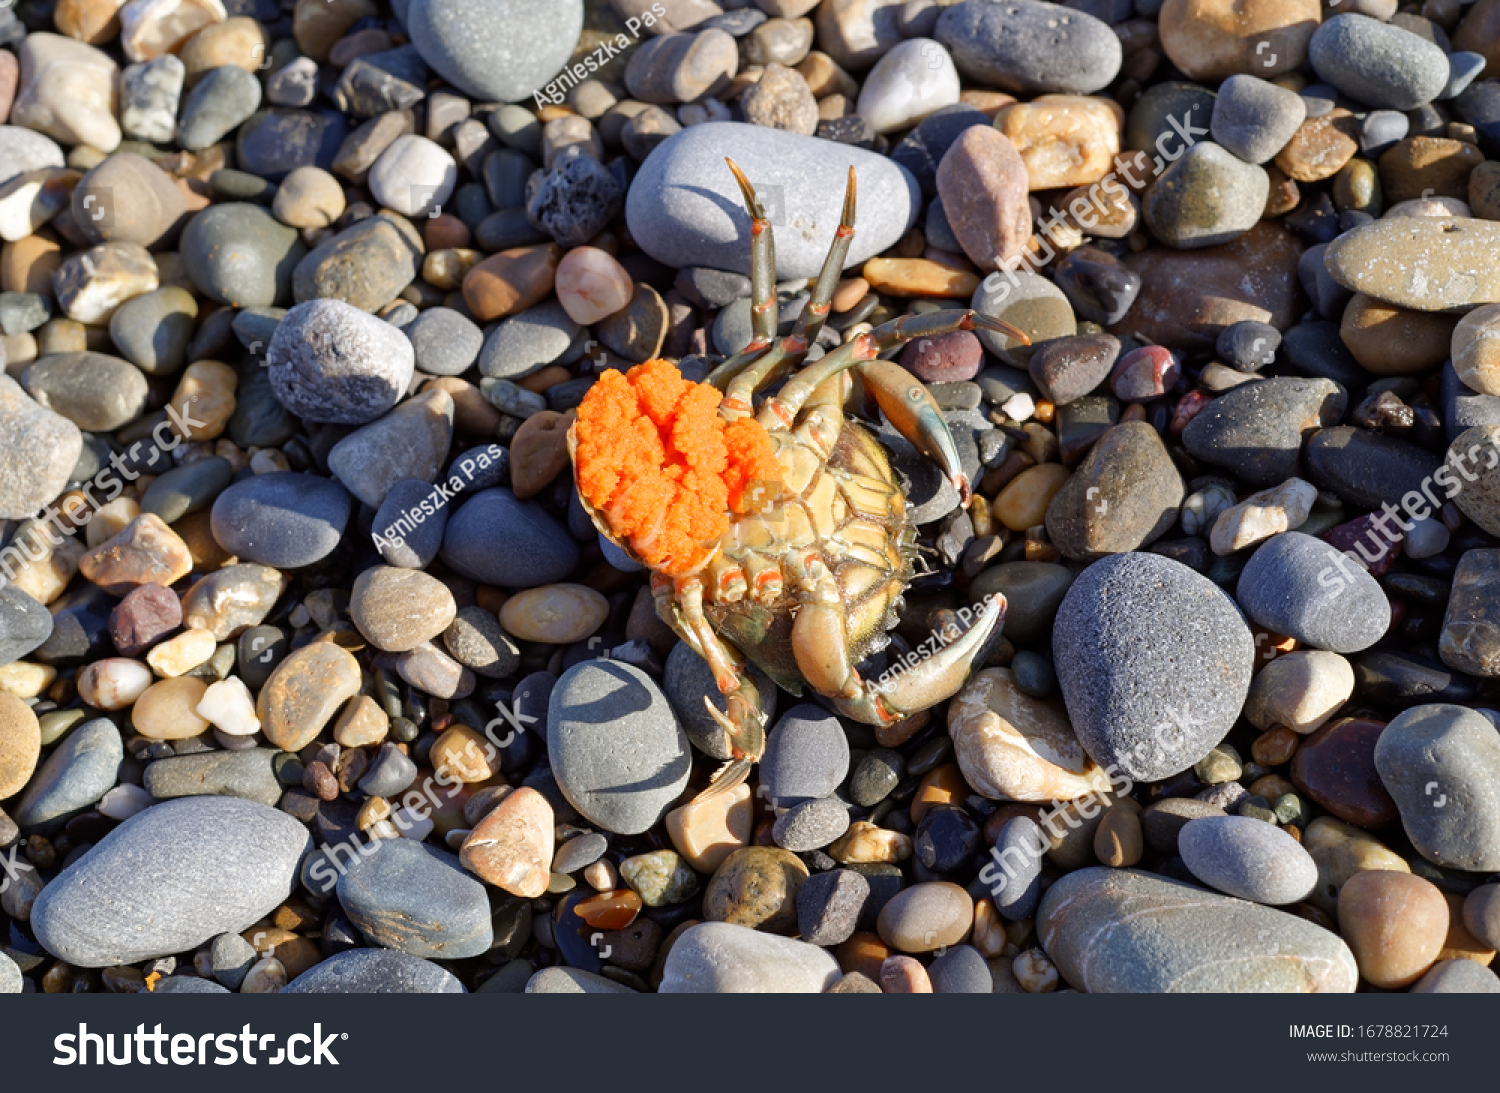 Shore Crab (Carcinus maenas) female lies upside down on the pebble beach. Dead and washed up, still carries eggs. Close up view. Sunny day.